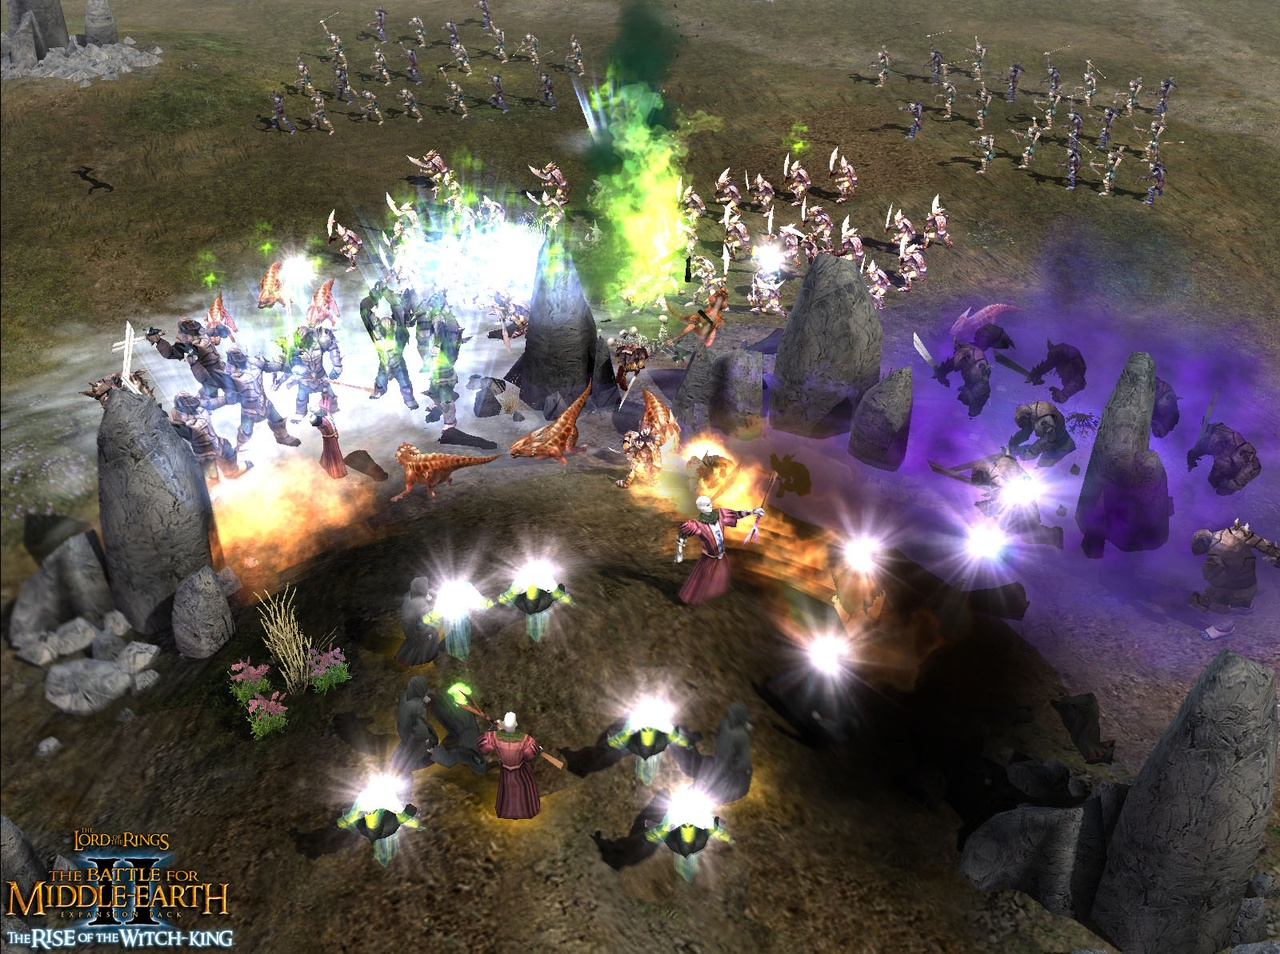 battle for middle earth rise of the witch king options.ini